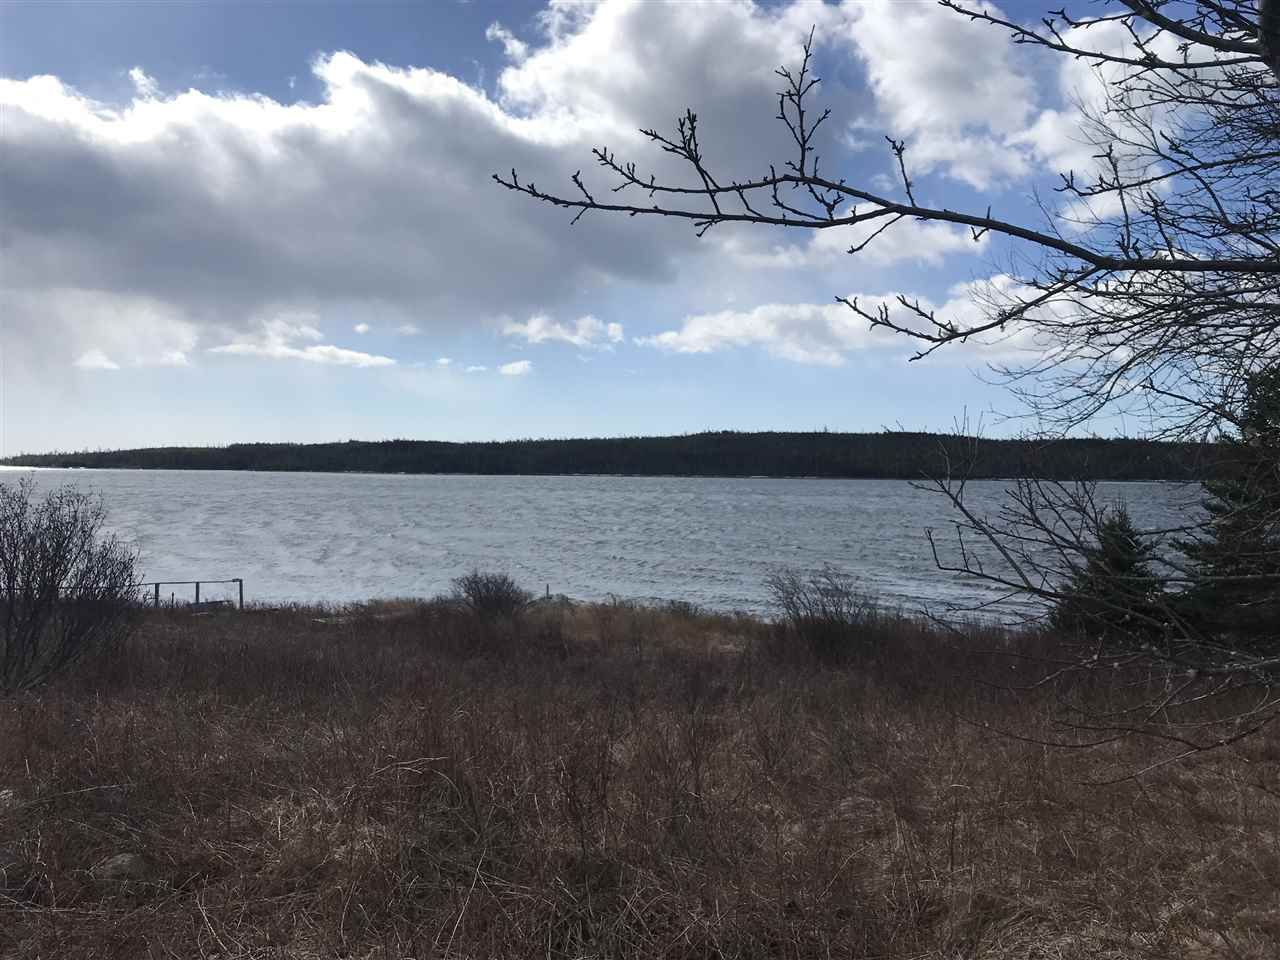 Main Photo: 304 Little Liscomb Road in Little Liscomb: 303-Guysborough County Vacant Land for sale (Highland Region)  : MLS®# 202100565